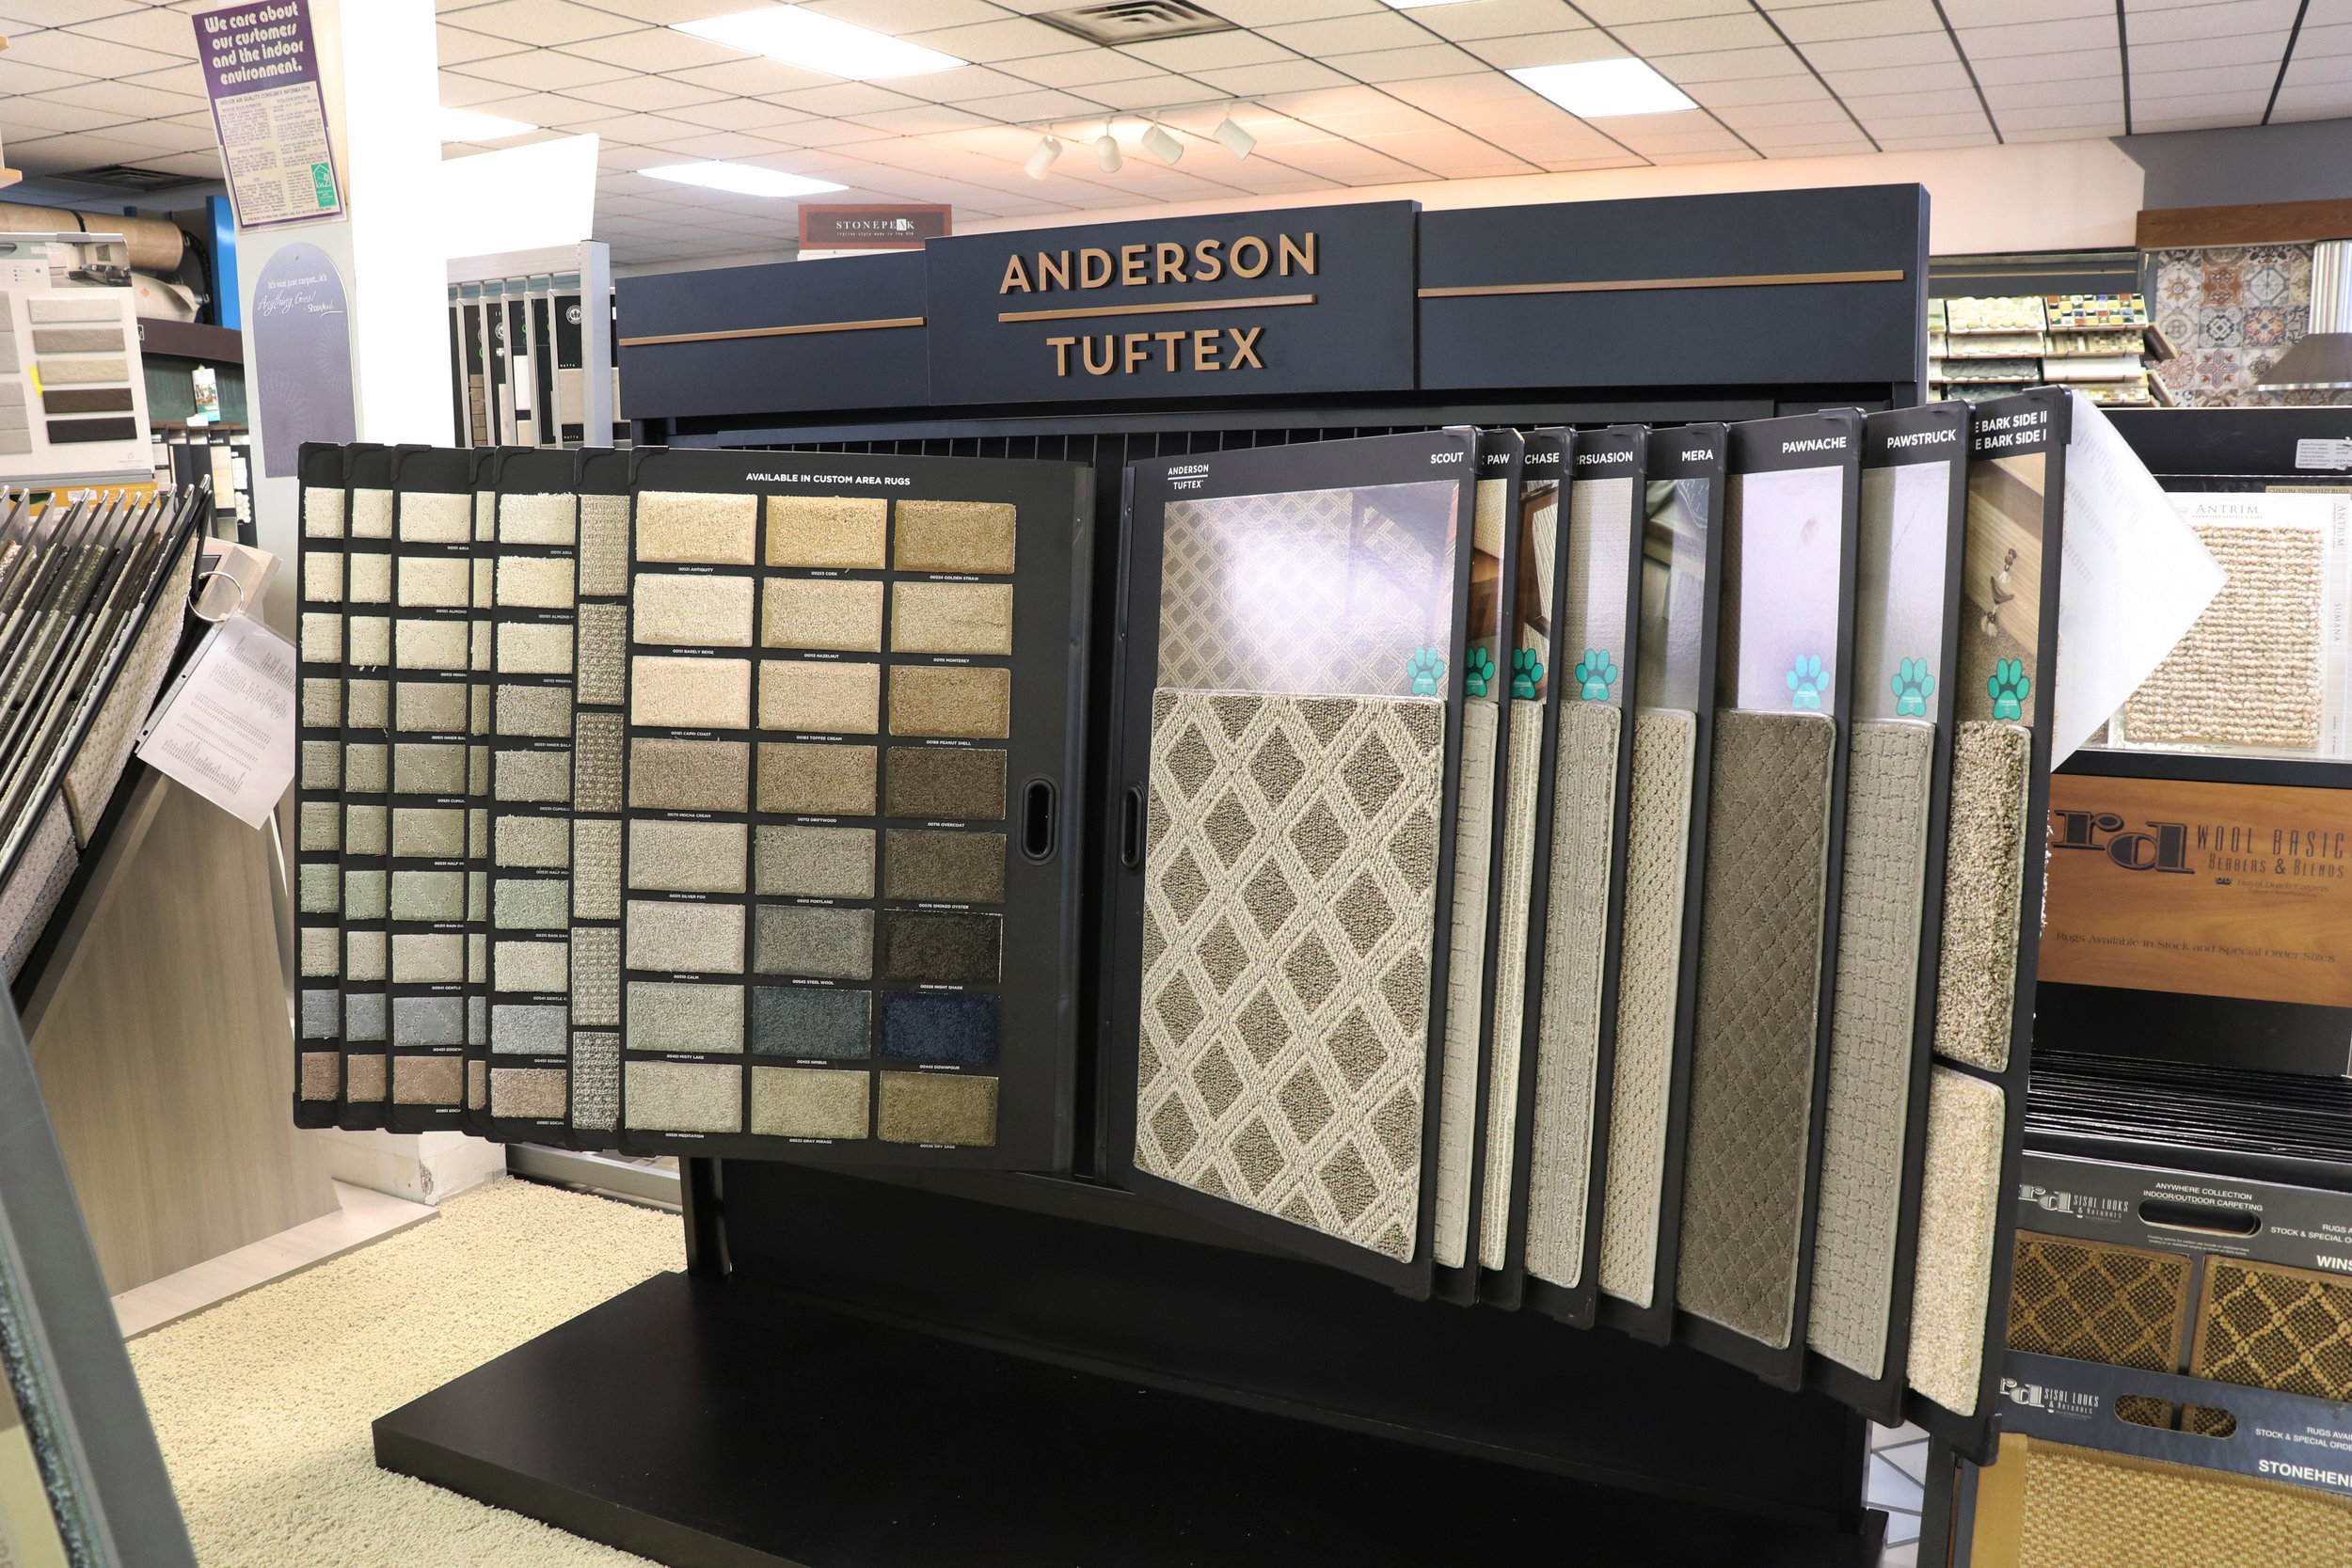 anderson tuftex display .jpg